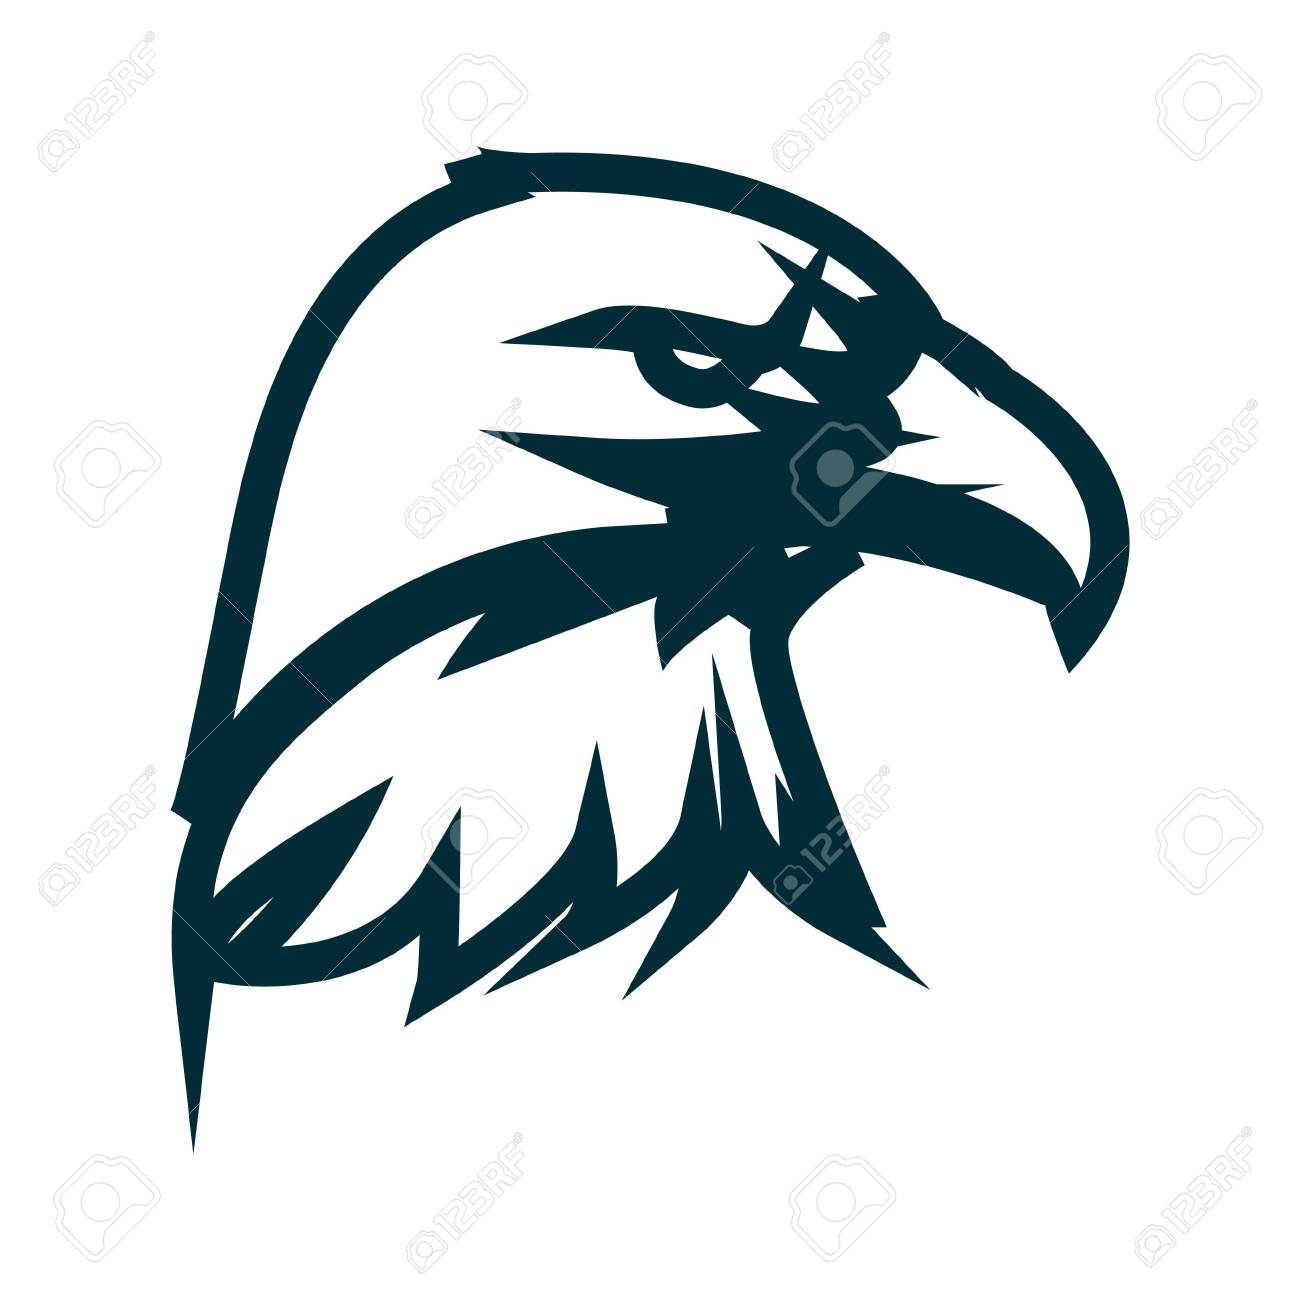 Eagle line art logo design  Eagle head outline vector illustration